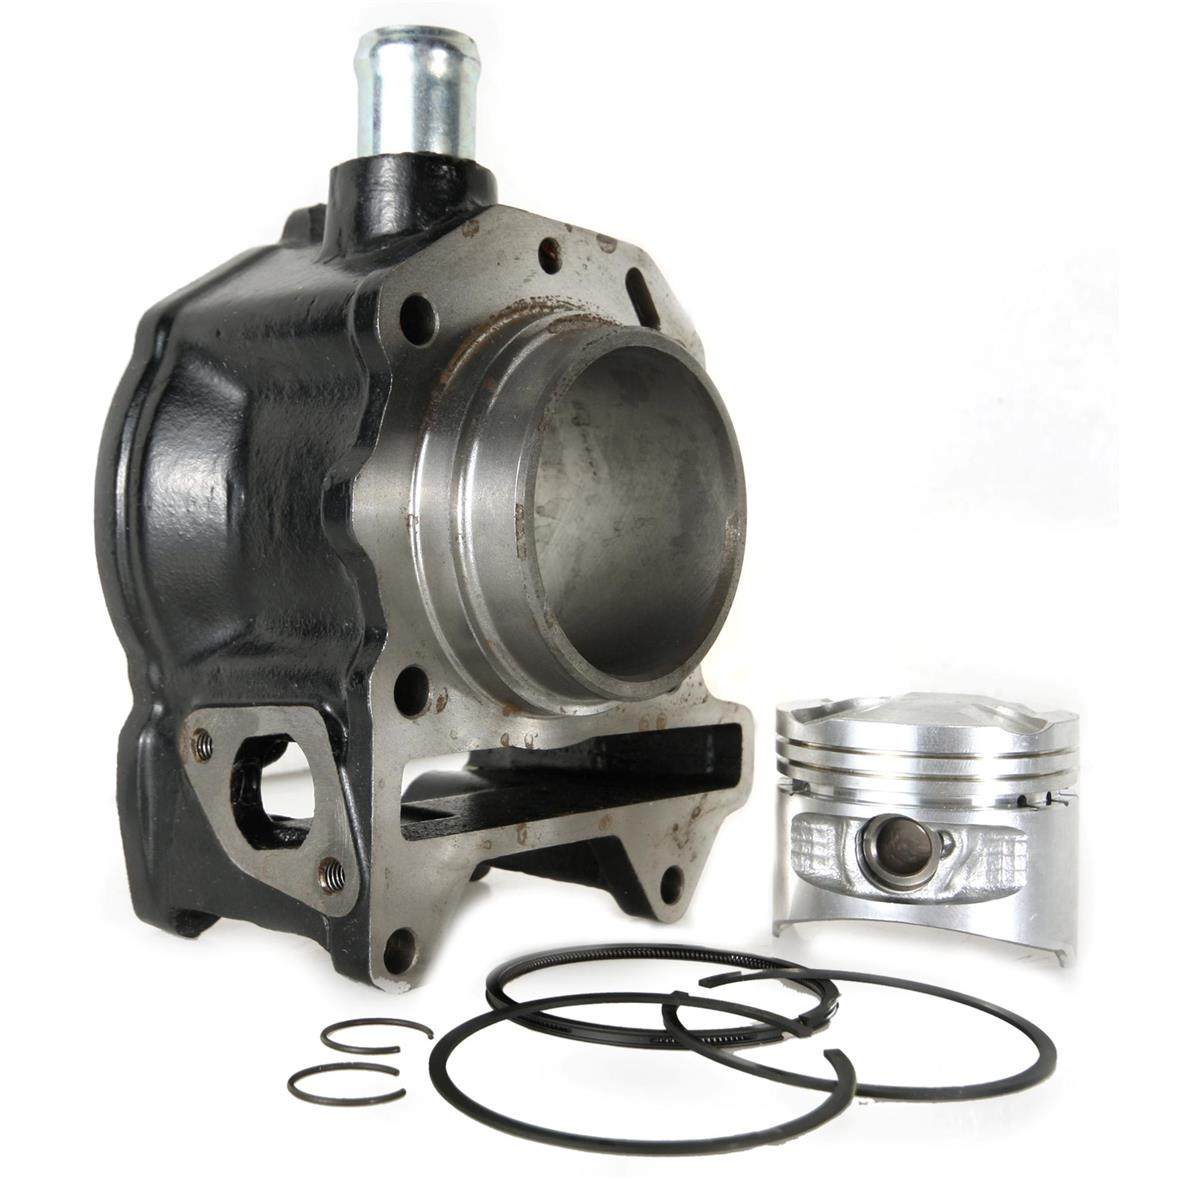 Product image for 'Cylinder PIAGGIO 125 ccTitle'